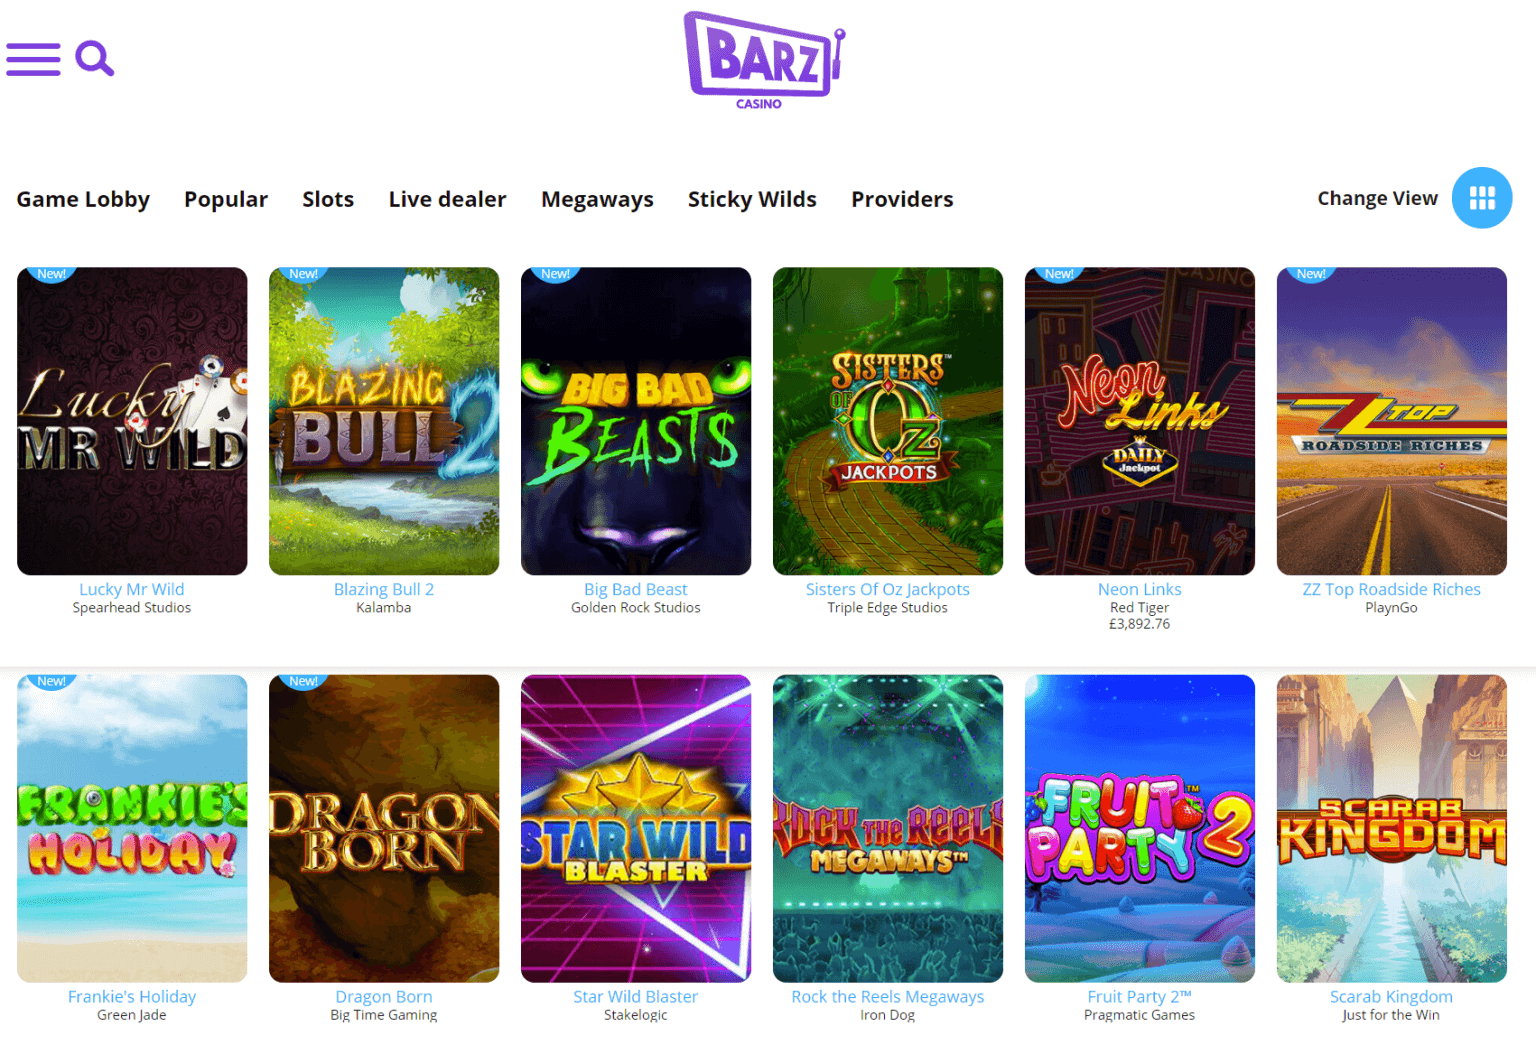 Another screenshot of the Barz website showing the latest additions to the casino. Most of the new games are slots, and they all have a unique thumbnail and logo